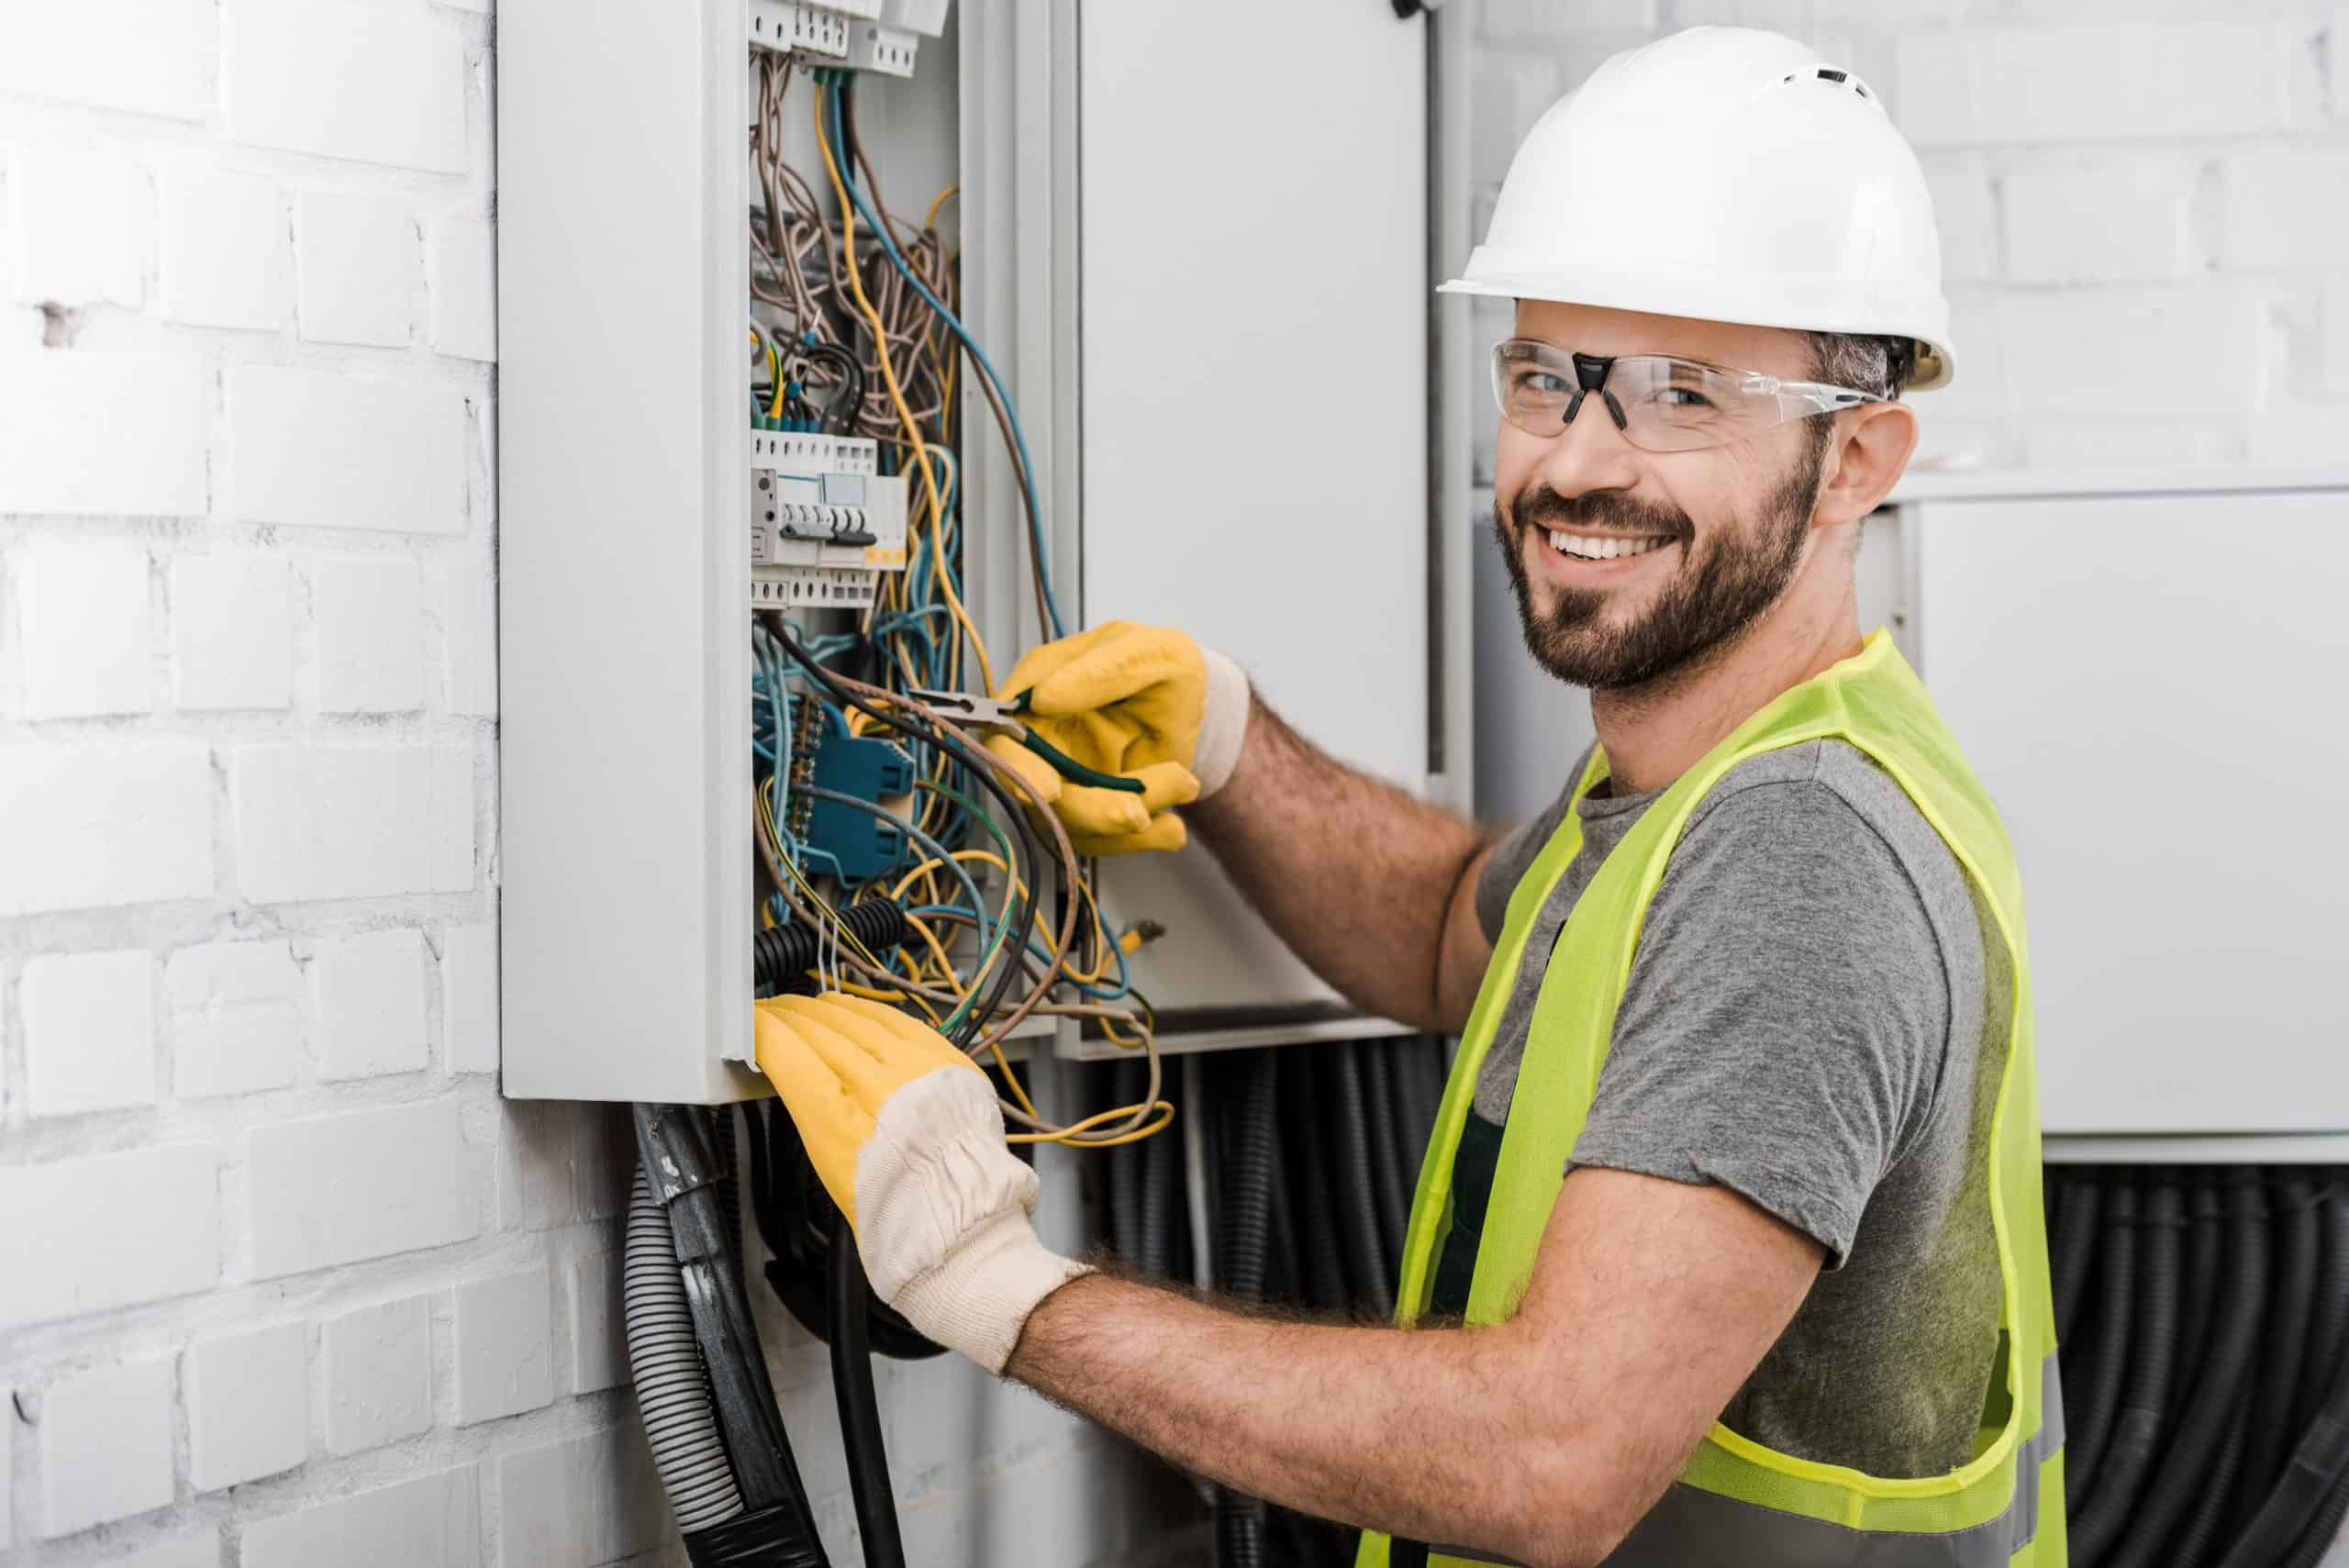 Differences Between a Level 2 and a Level 1 Electrician